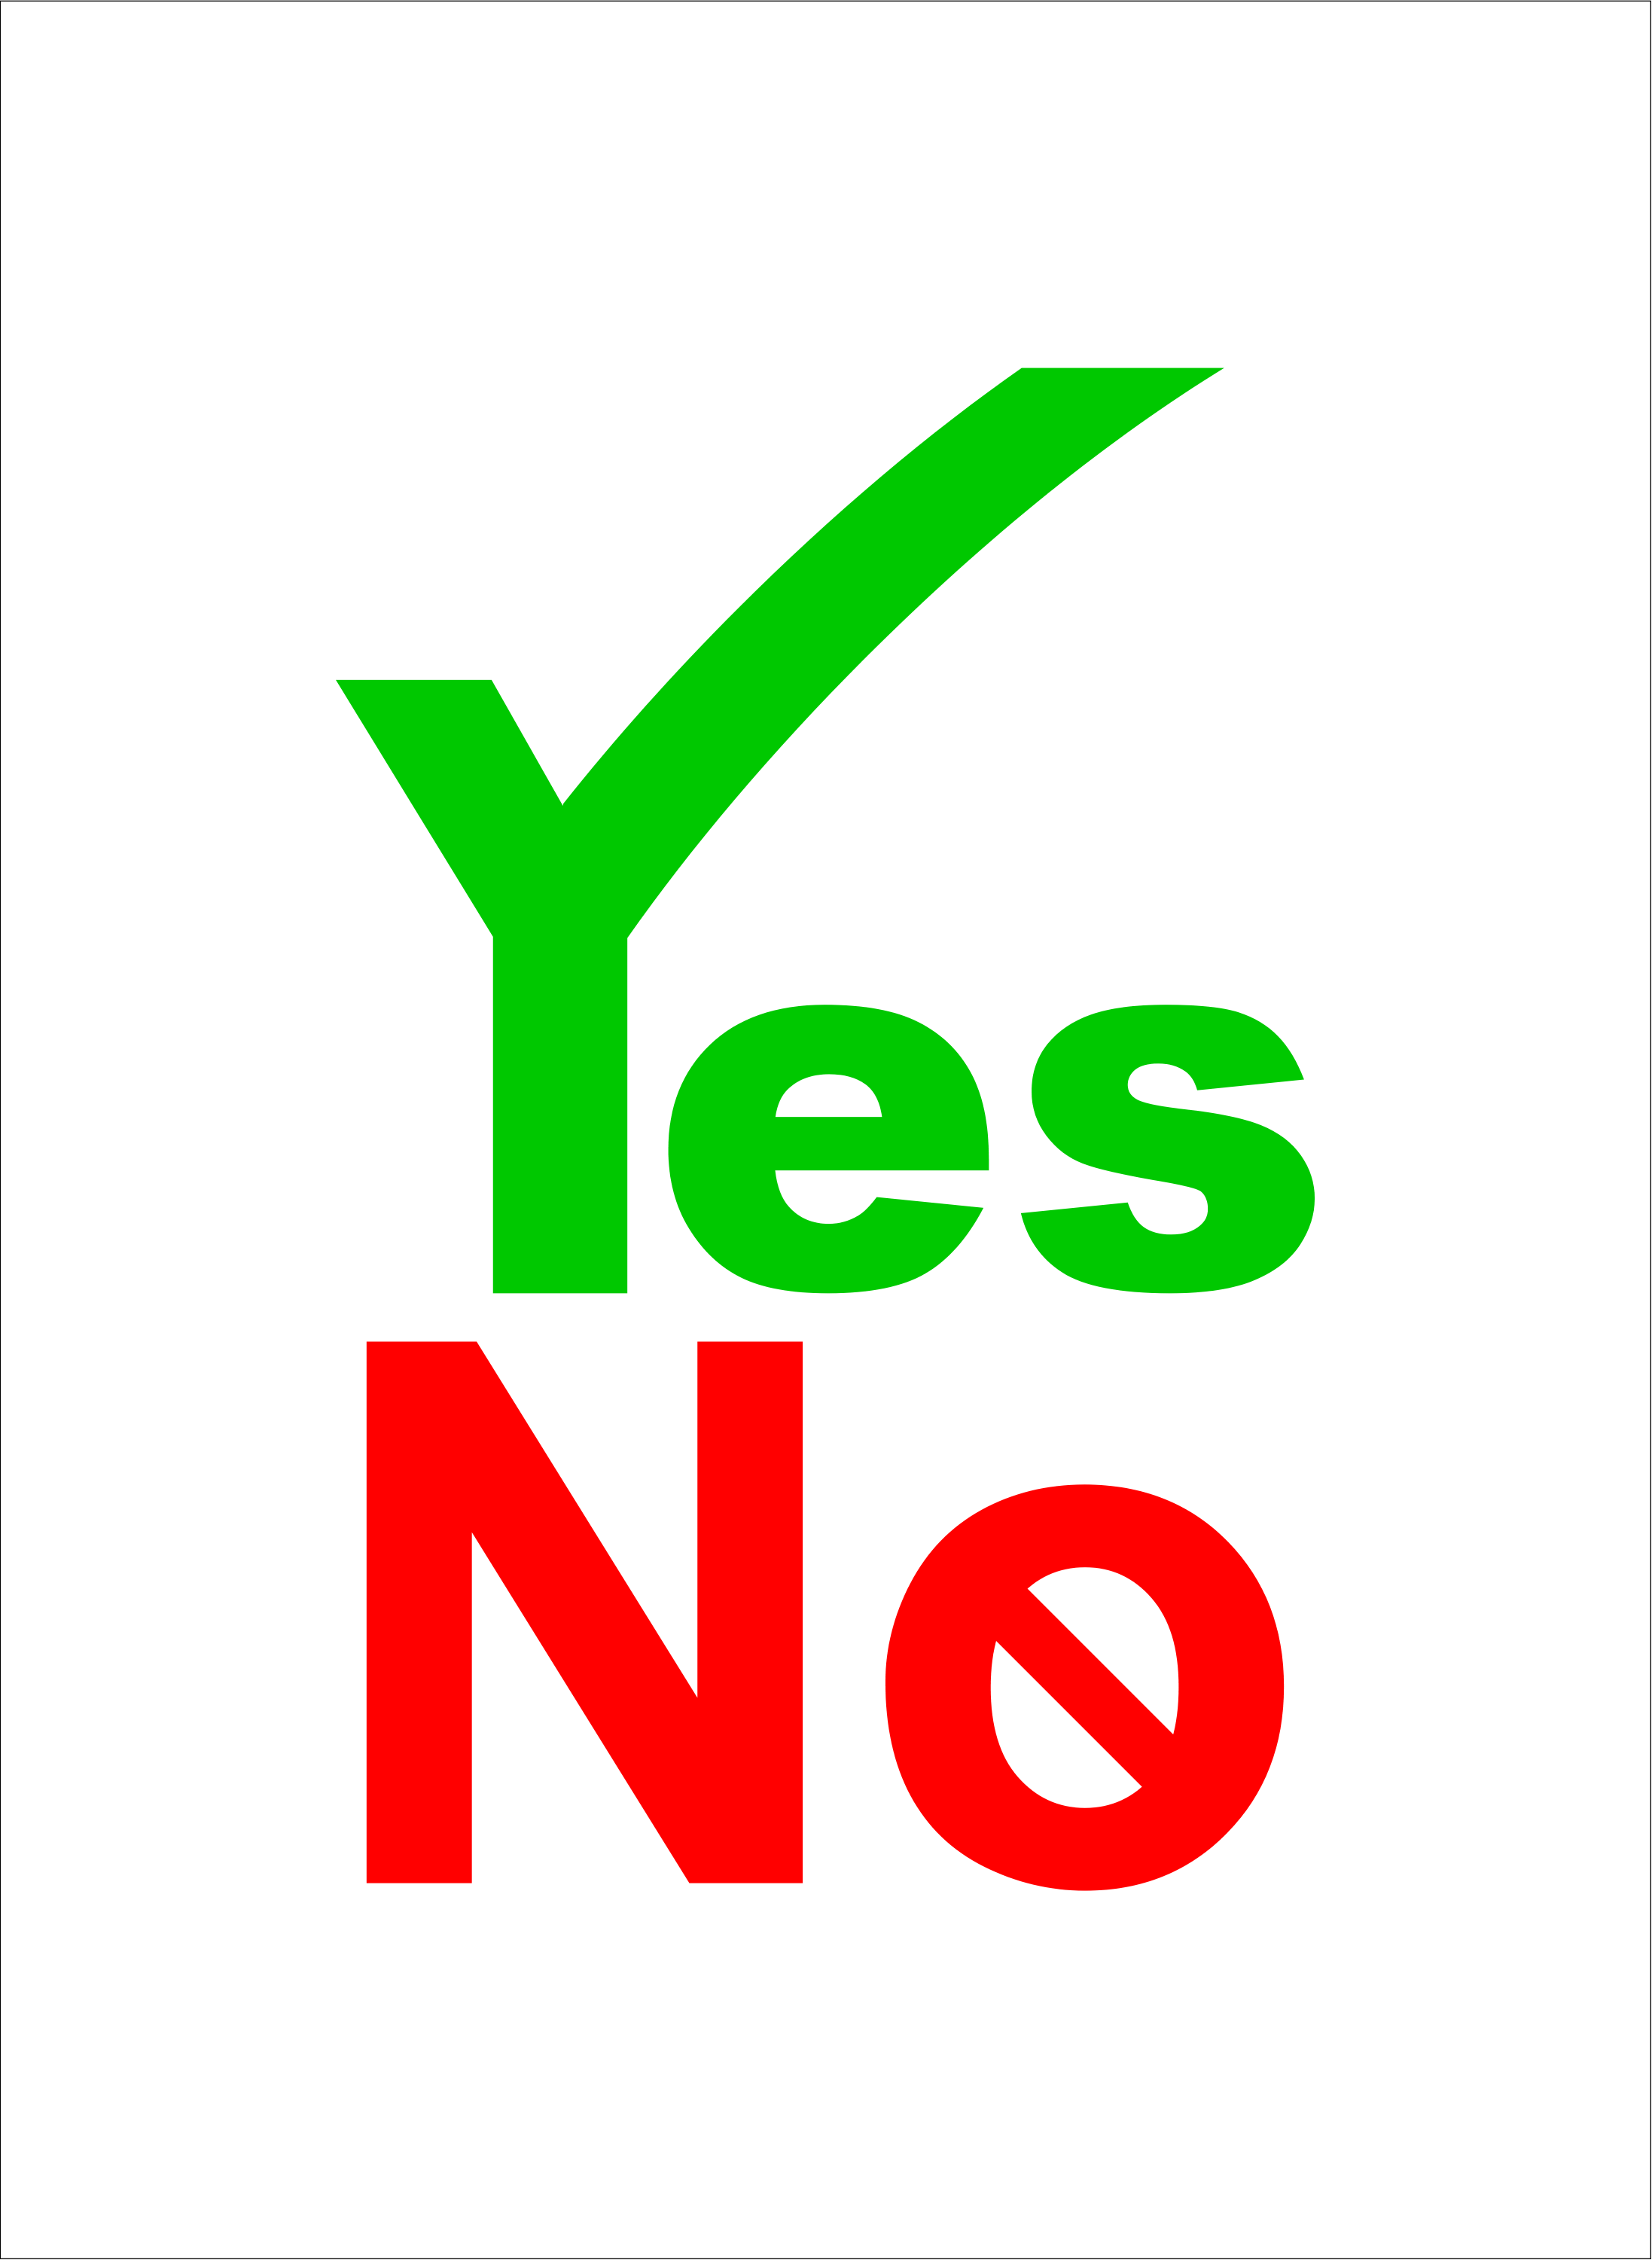 ''Yes No'' Word Art By Assassicactus On DeviantArt